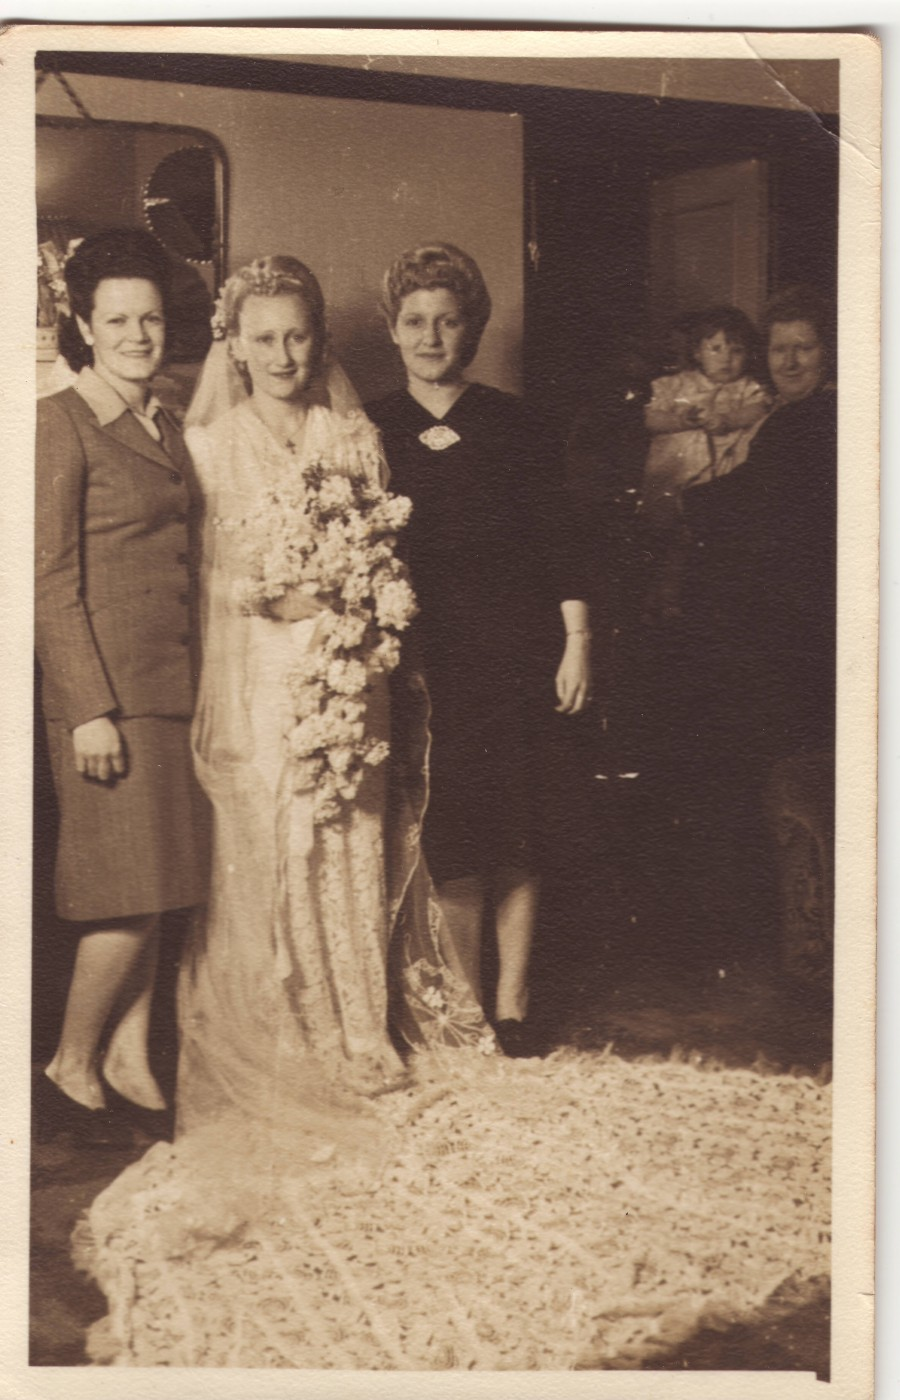 Maude and George's Wedding Day